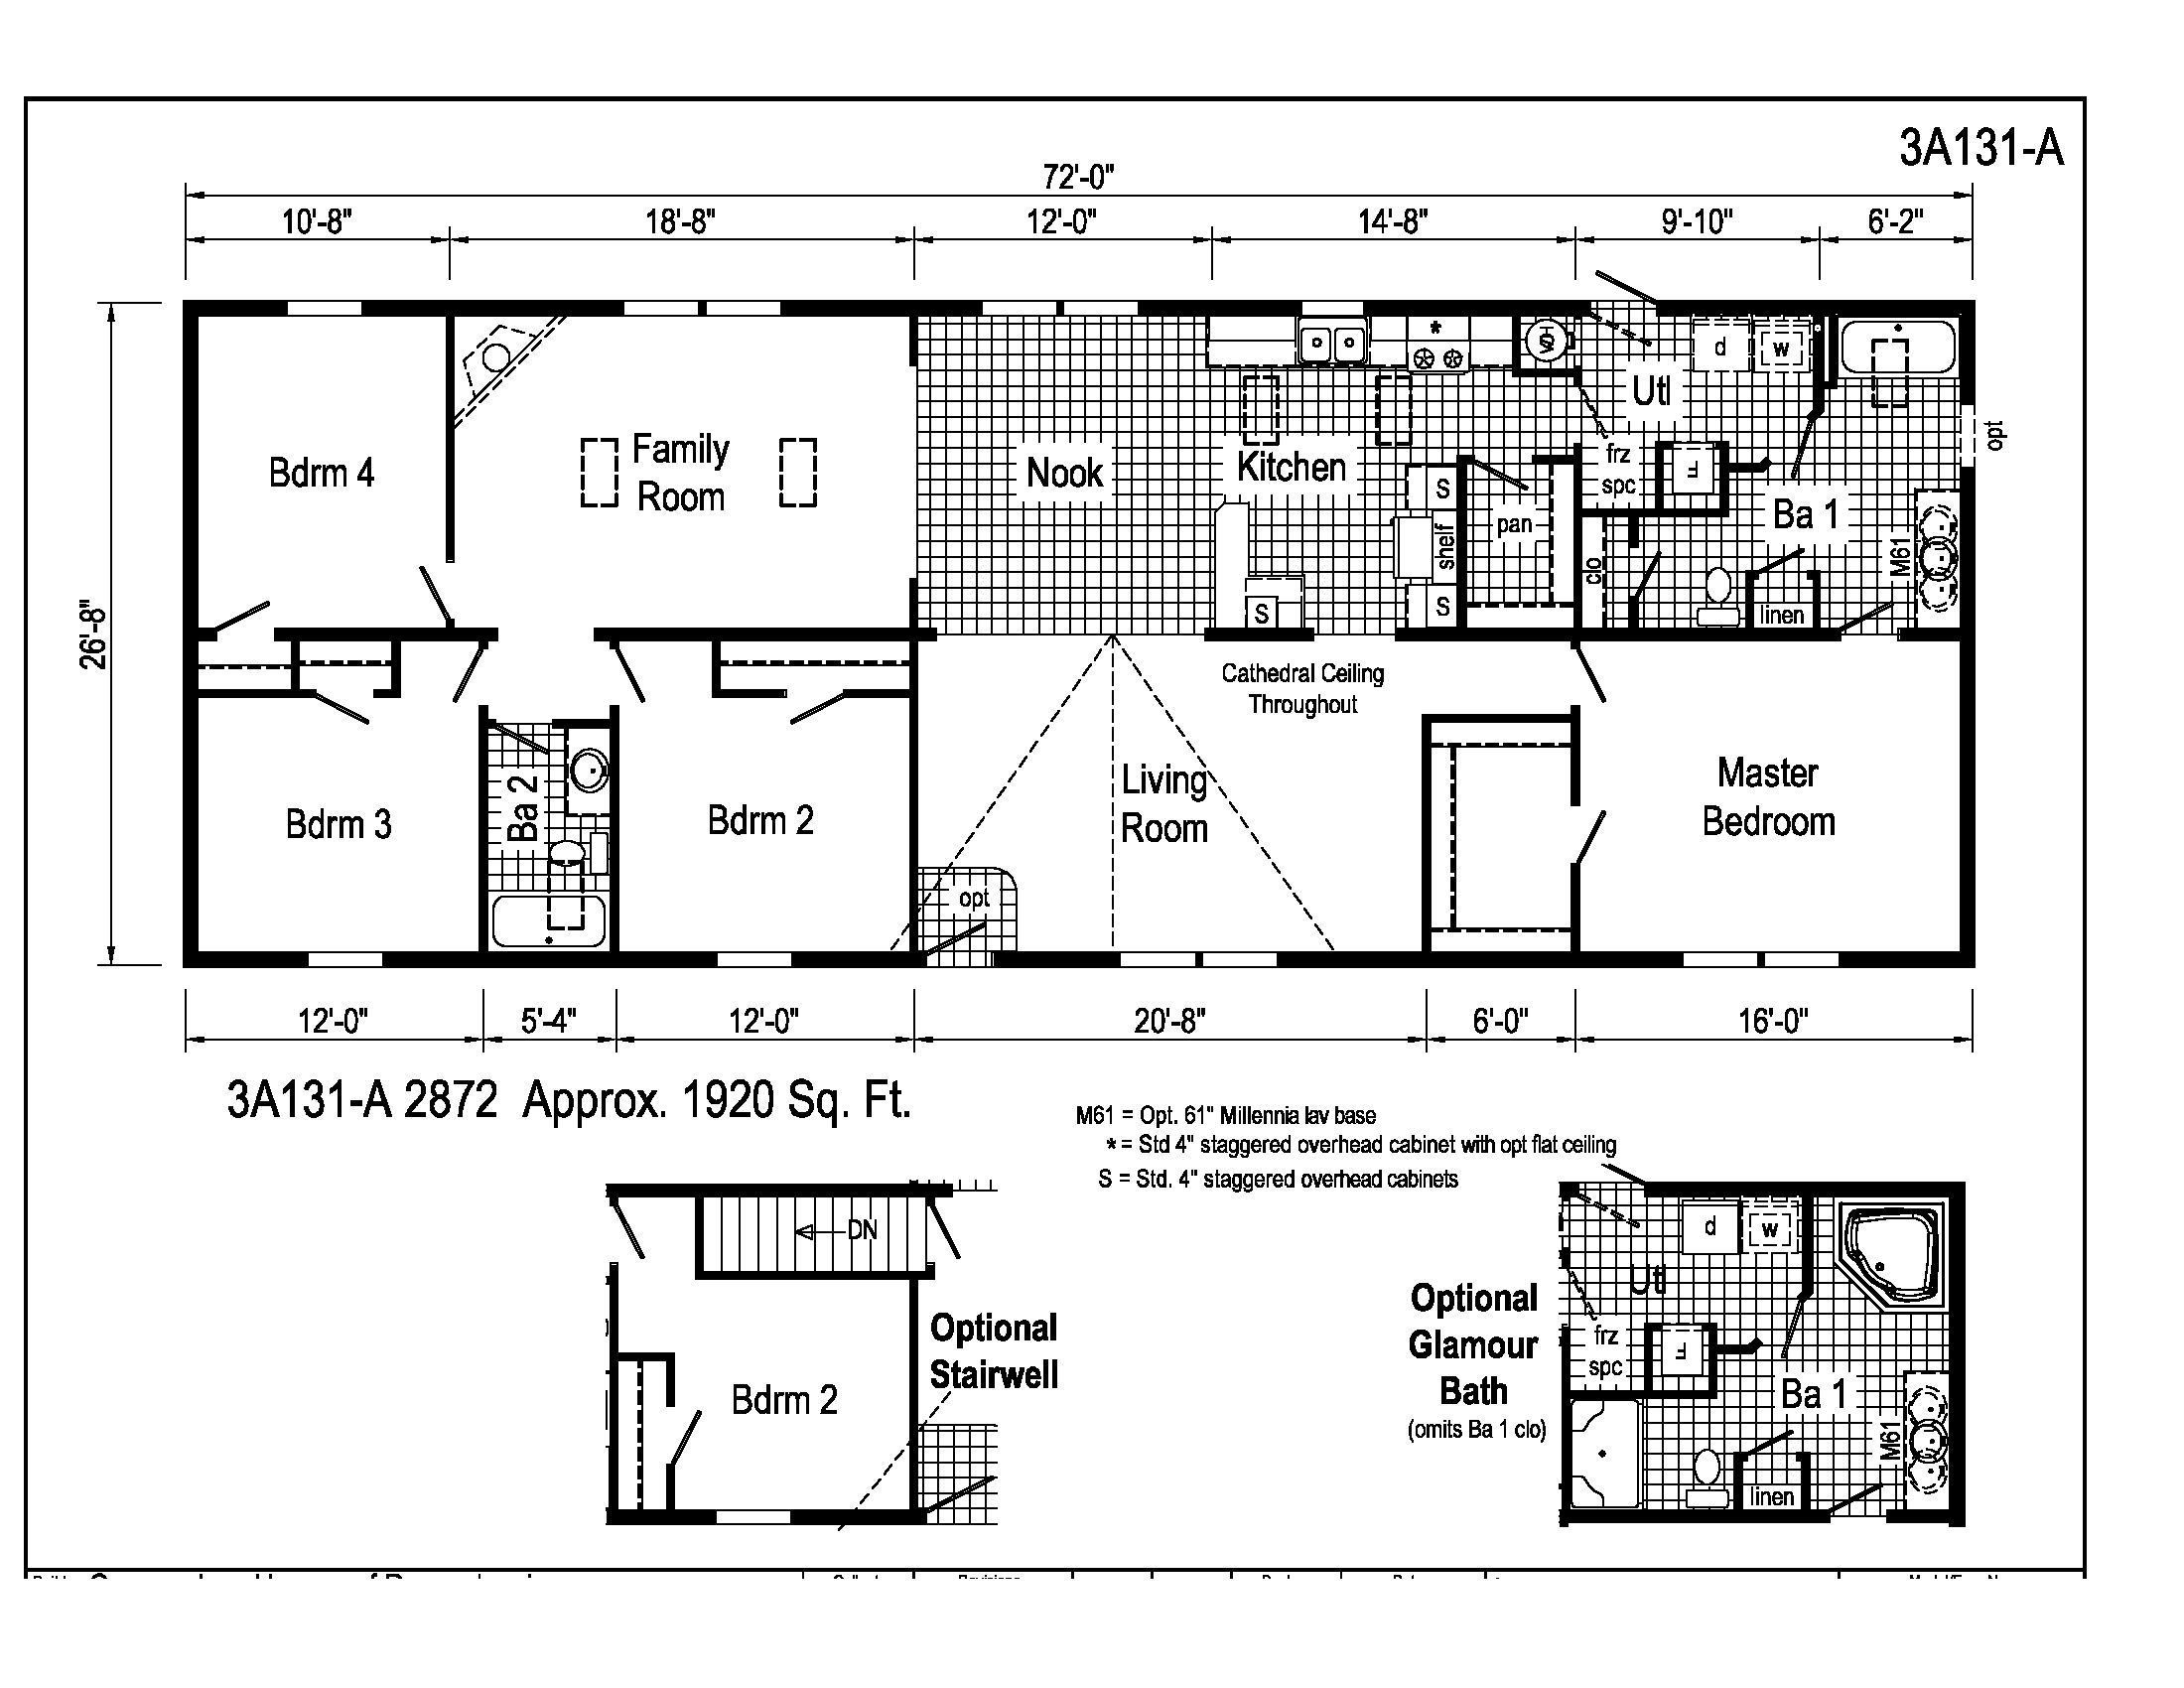 Astro ranch 3a131a midwest homes miscellaneous for Midwest living house plans